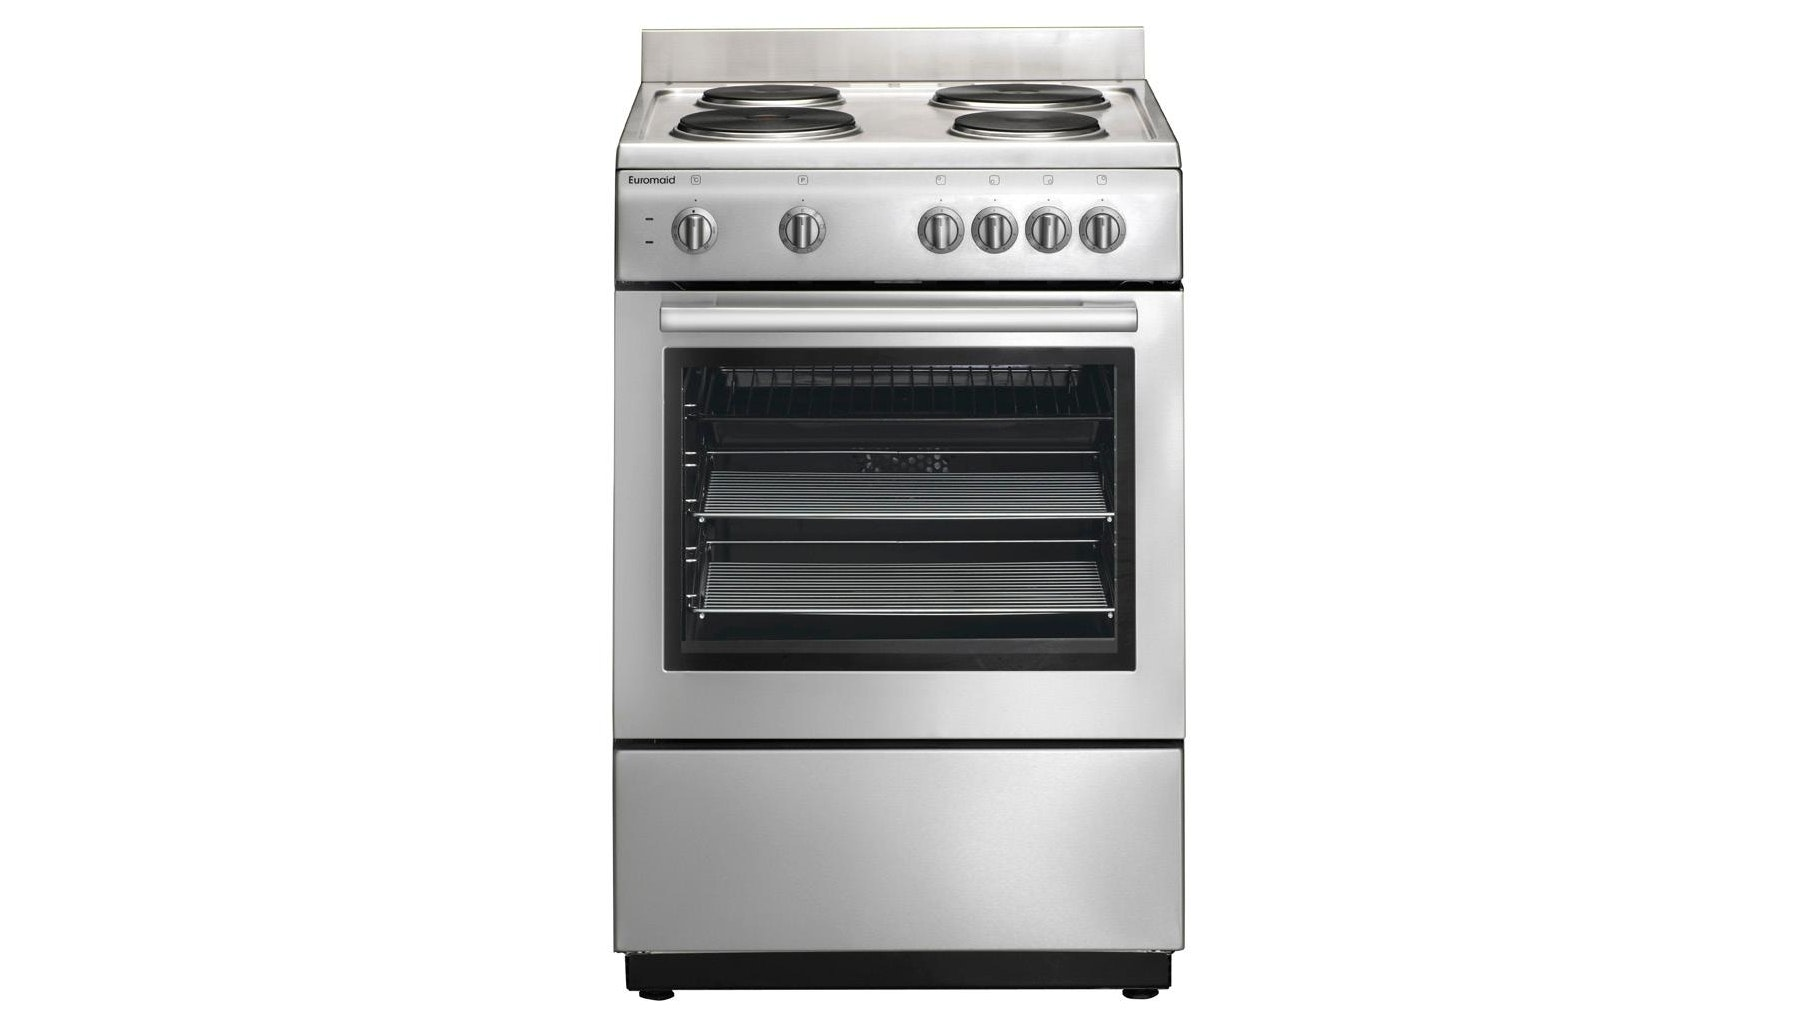 Euromaid ES60 60cm Stainless Steel Upright Cooker